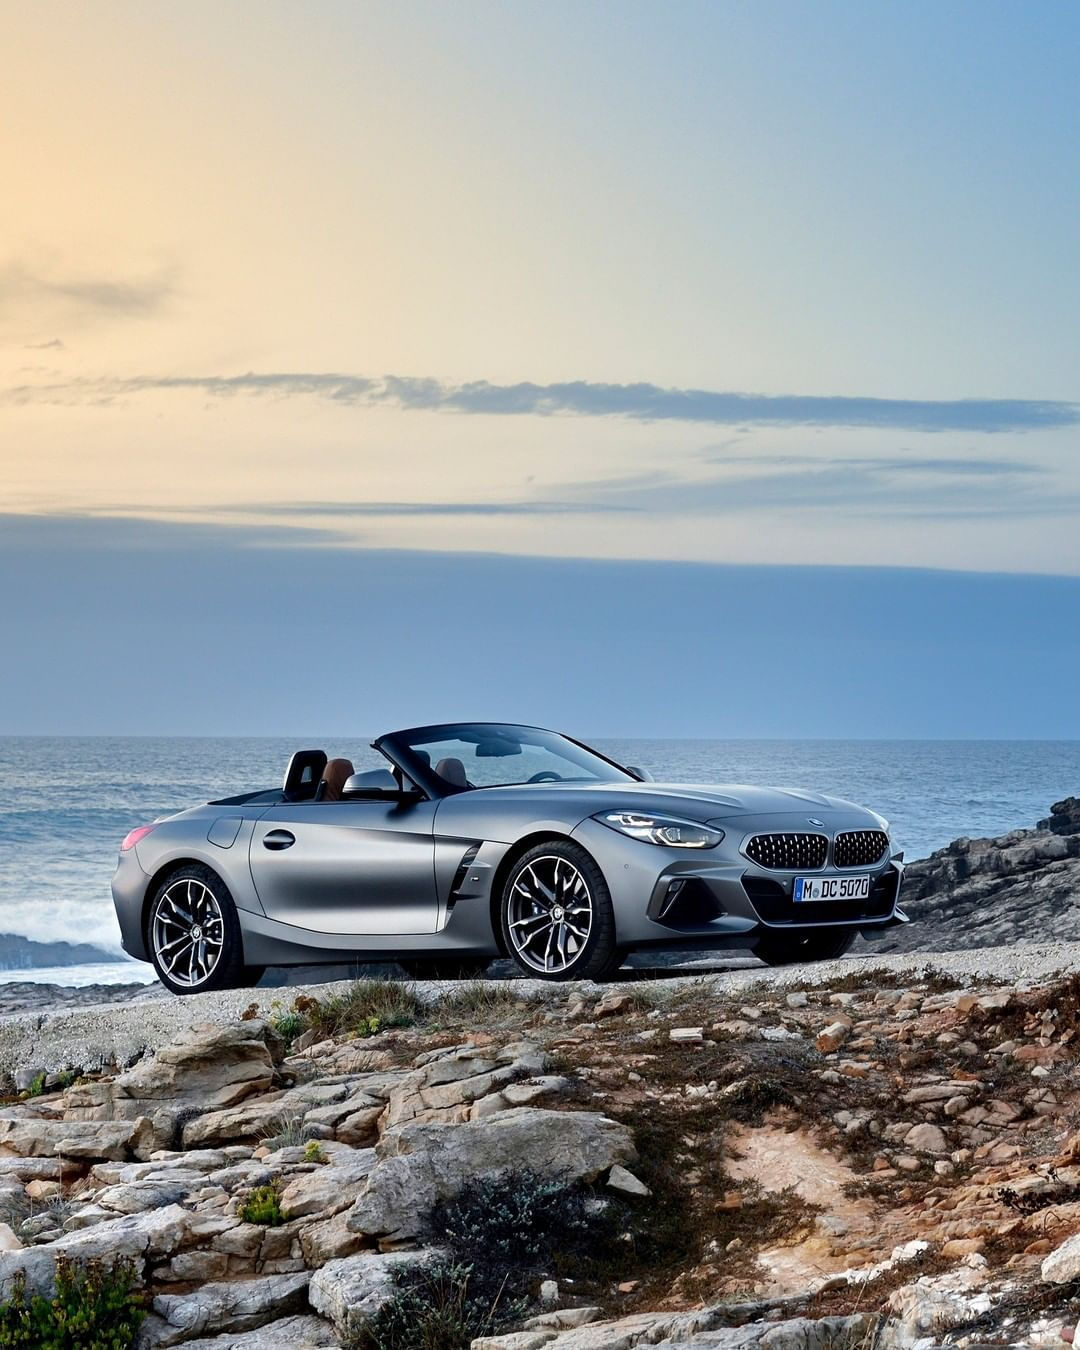 New Bmw Z4: Always Up For An Exciting New Adventure. The All-new BMW